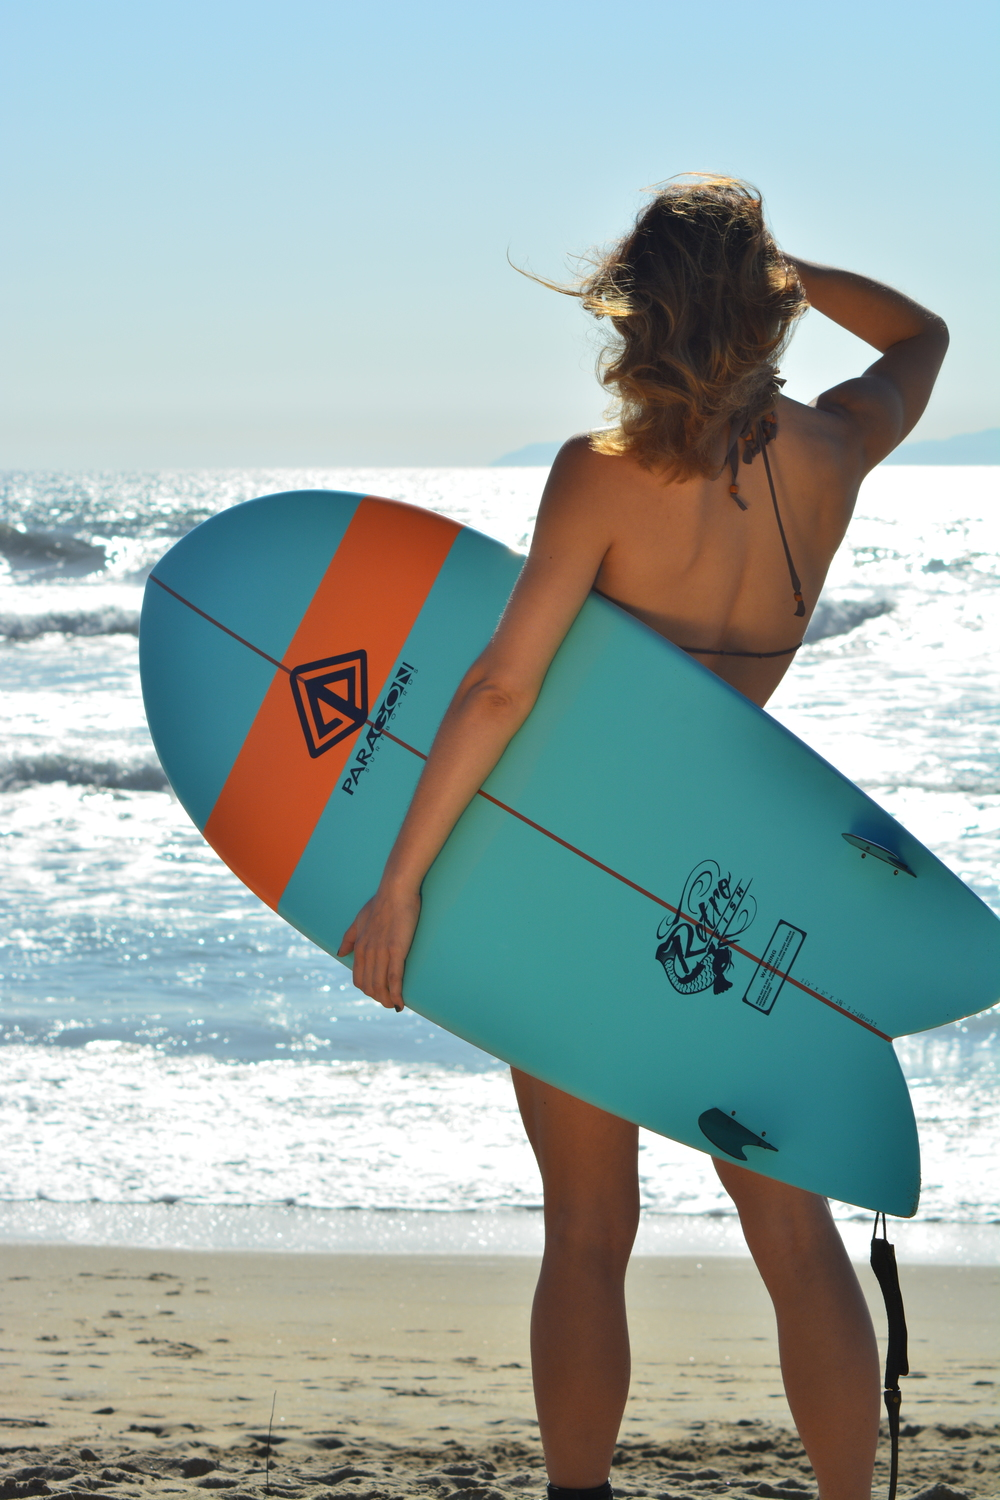 Paragon Surfboards